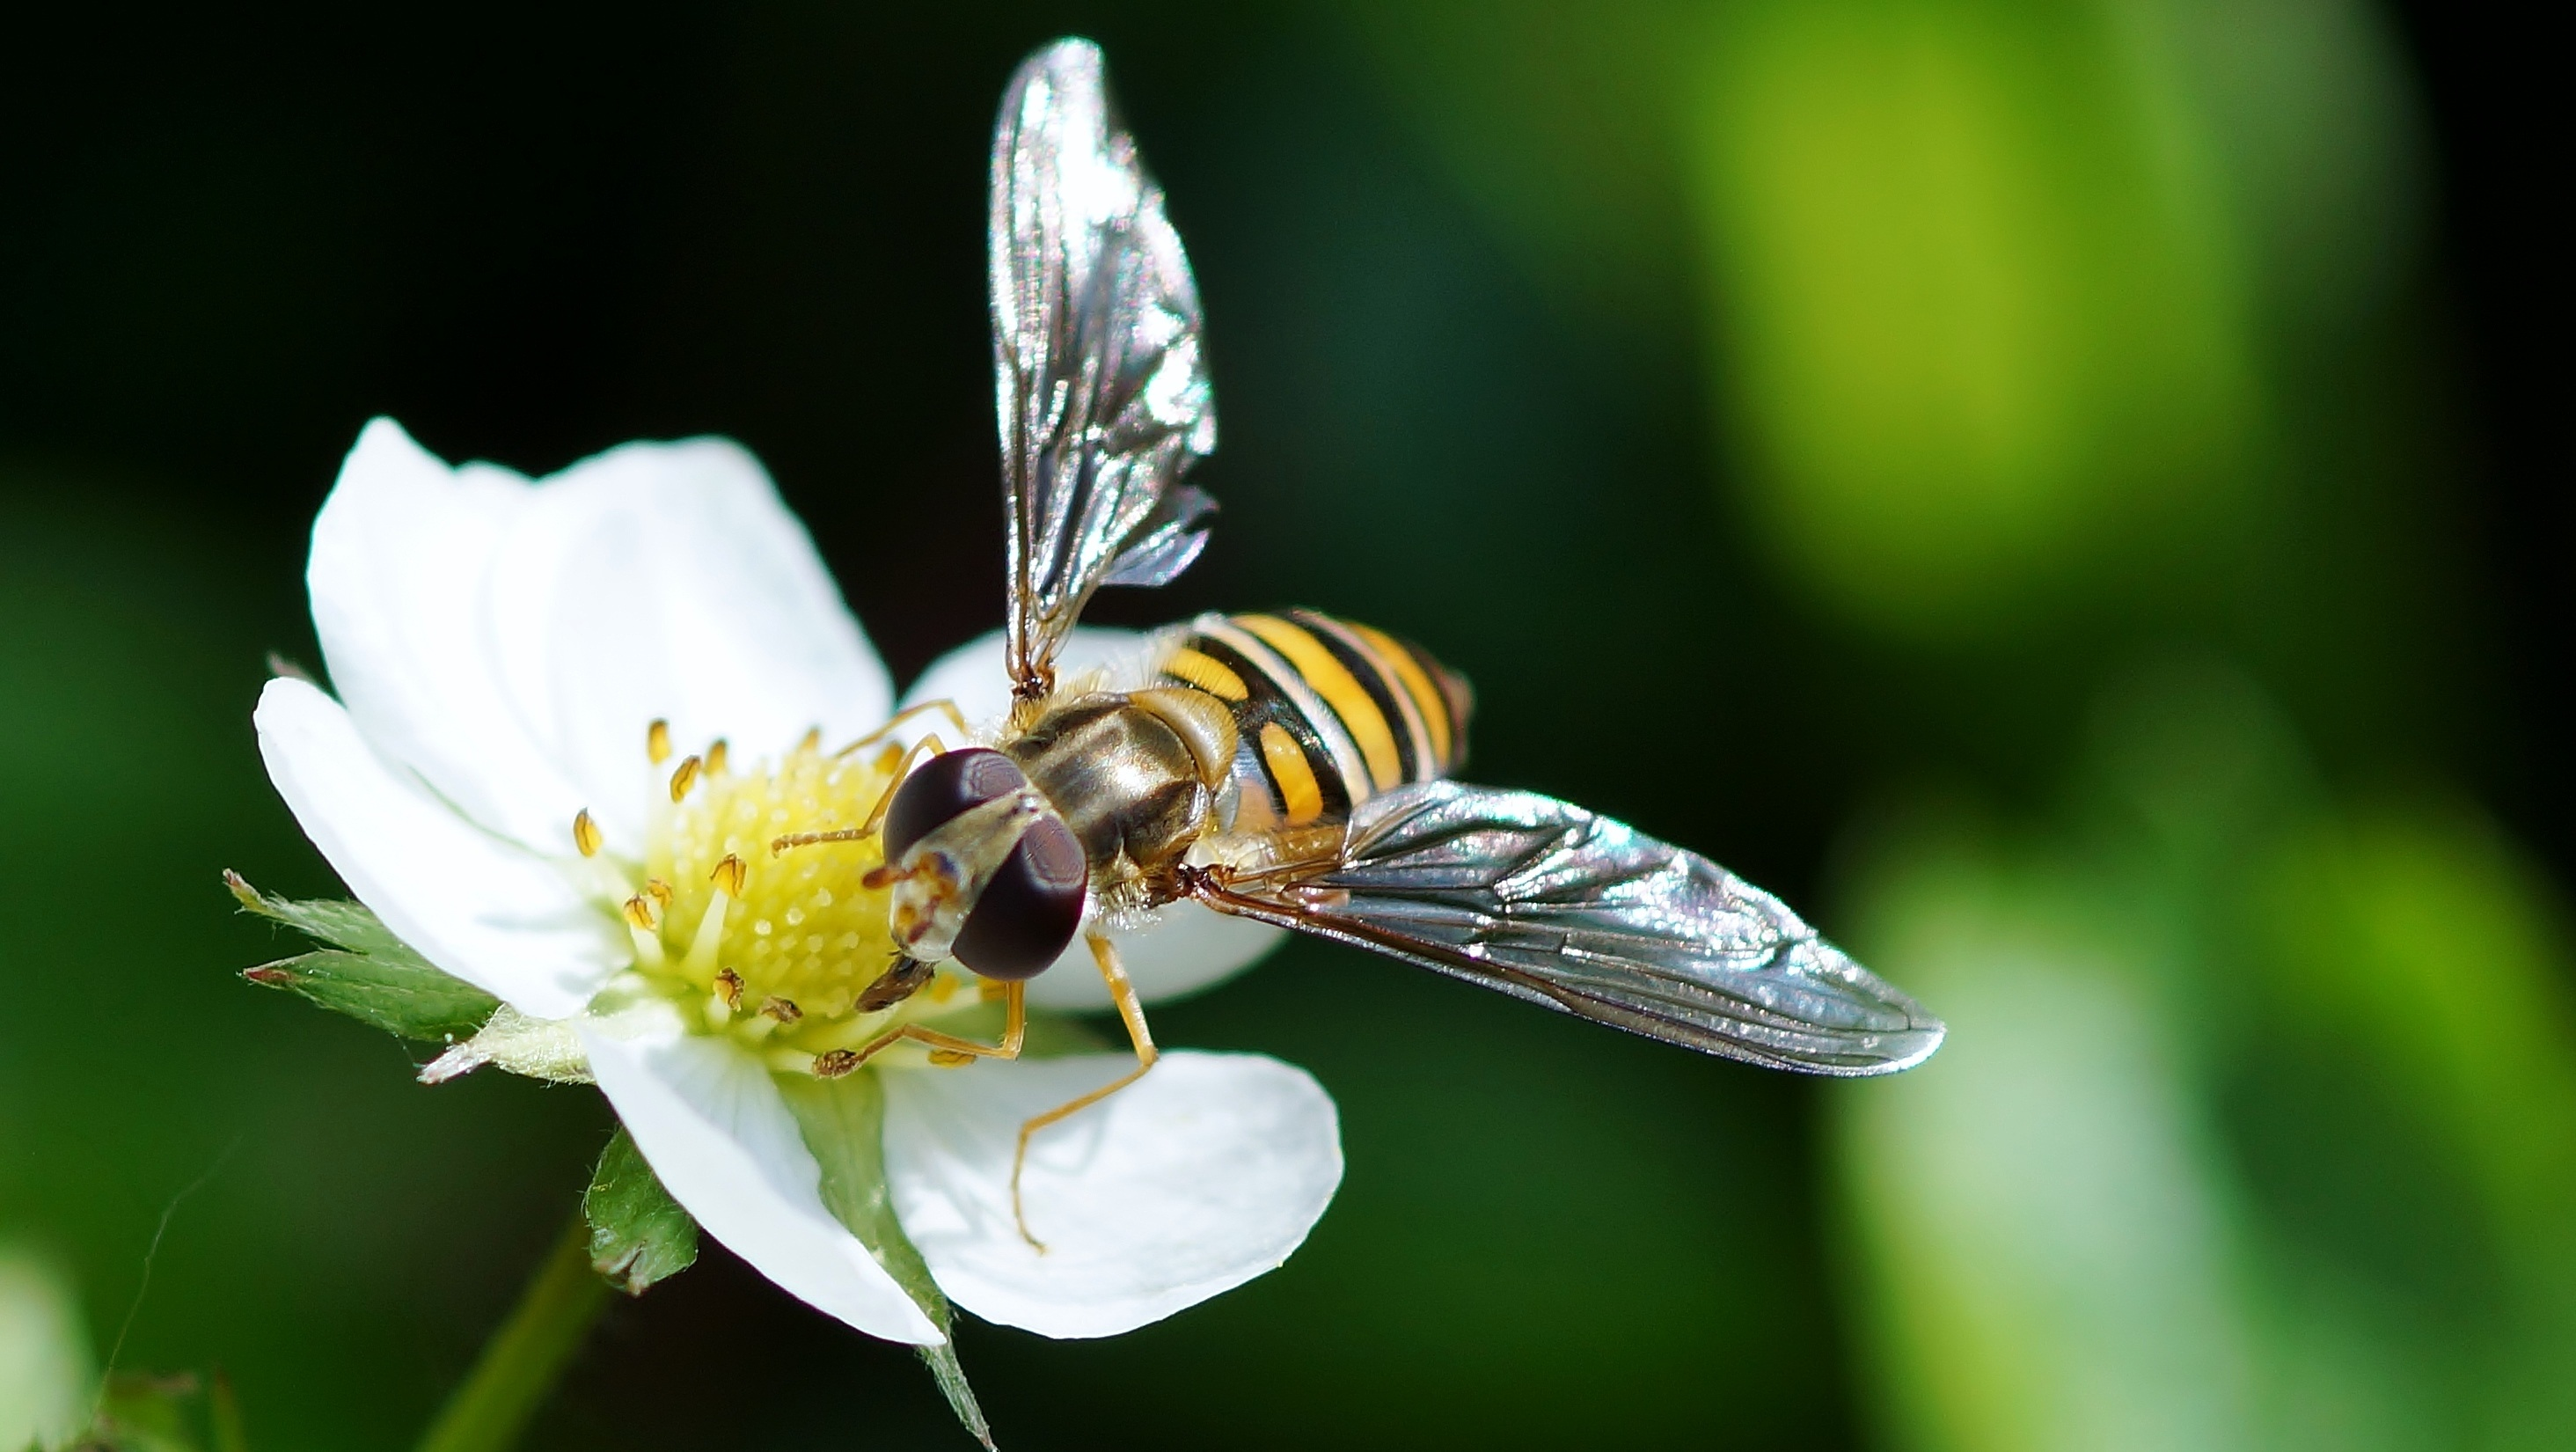 Bee pollination drone insect flower